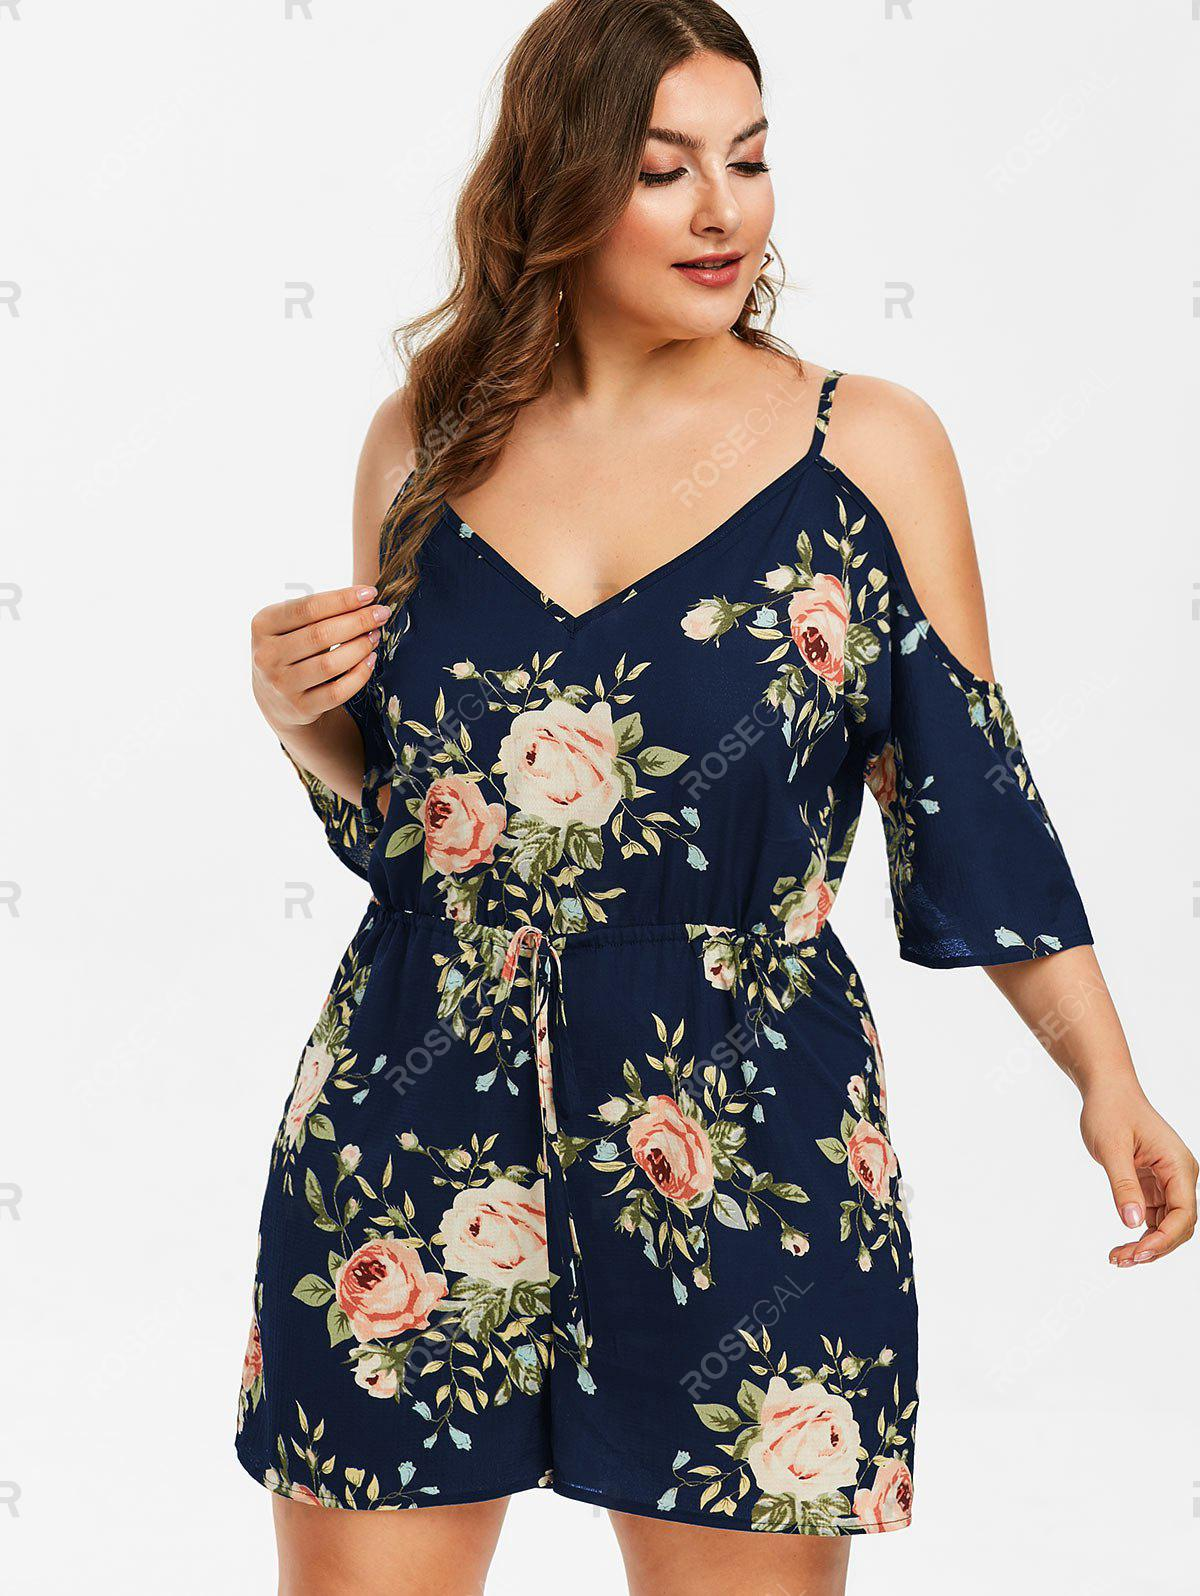 Plus Size Floral Cold Shoulder Romper - Plus Size Floral Cold Shoulder Romper - Plus Size Floral Cold Shoulder Romper - Plus Size Floral Cold Shoulder Romper - Outfits Plus Size Floral Cold Shoulder Romper Plus Size Floral Cold Shoulder Romper